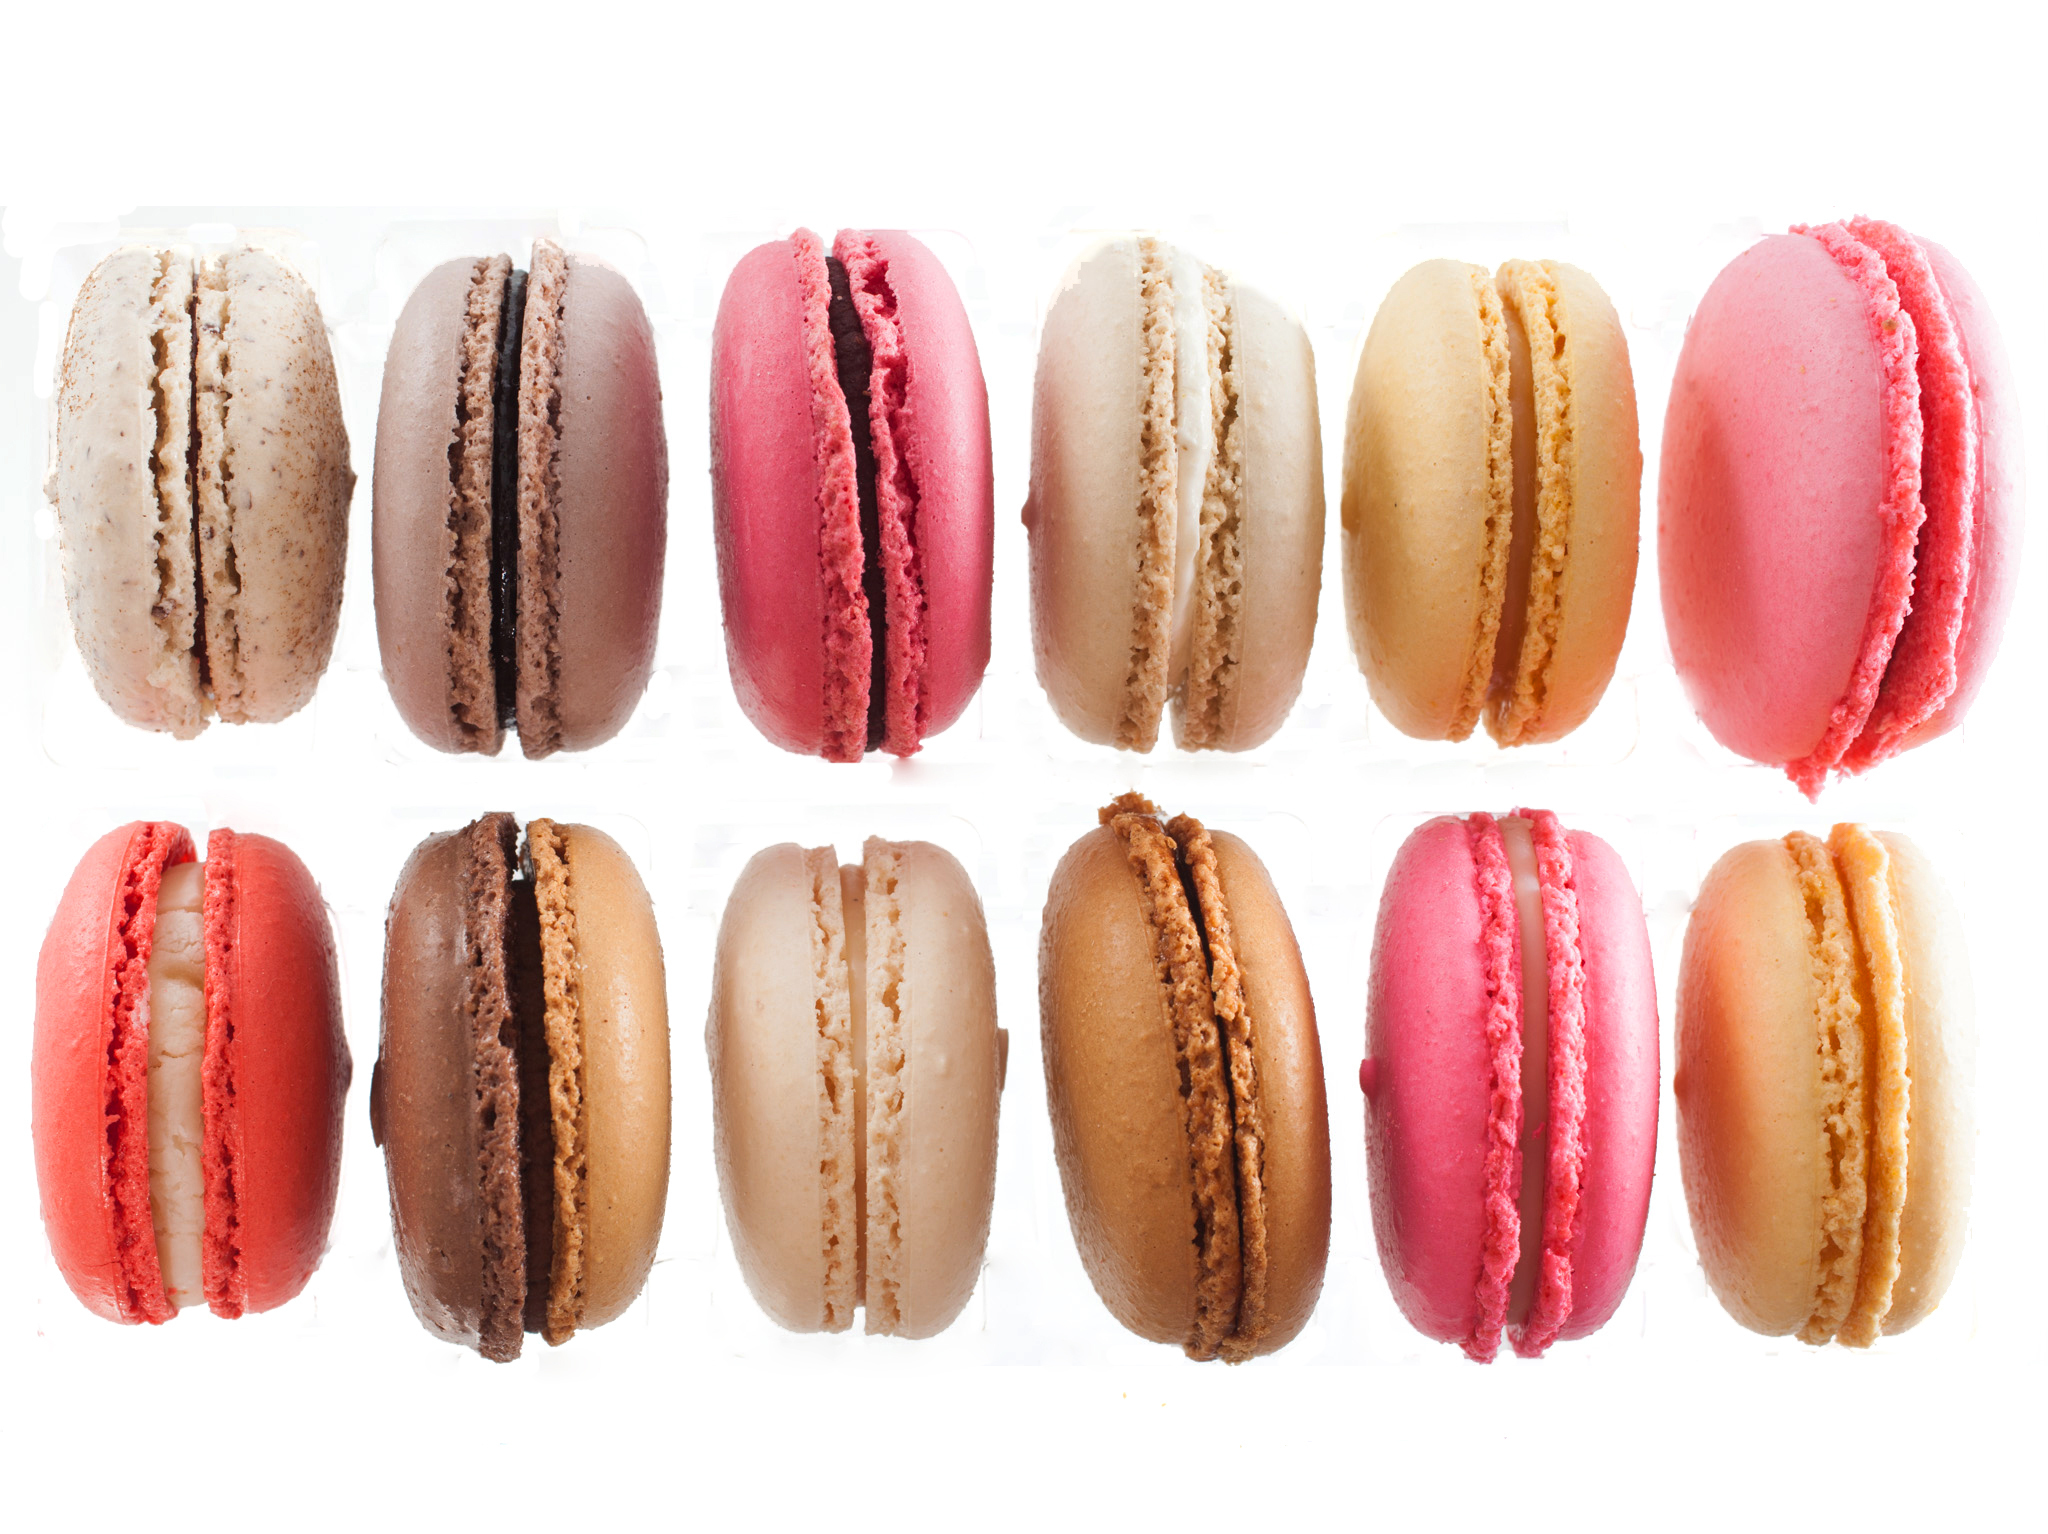 Macarons from La Fournette